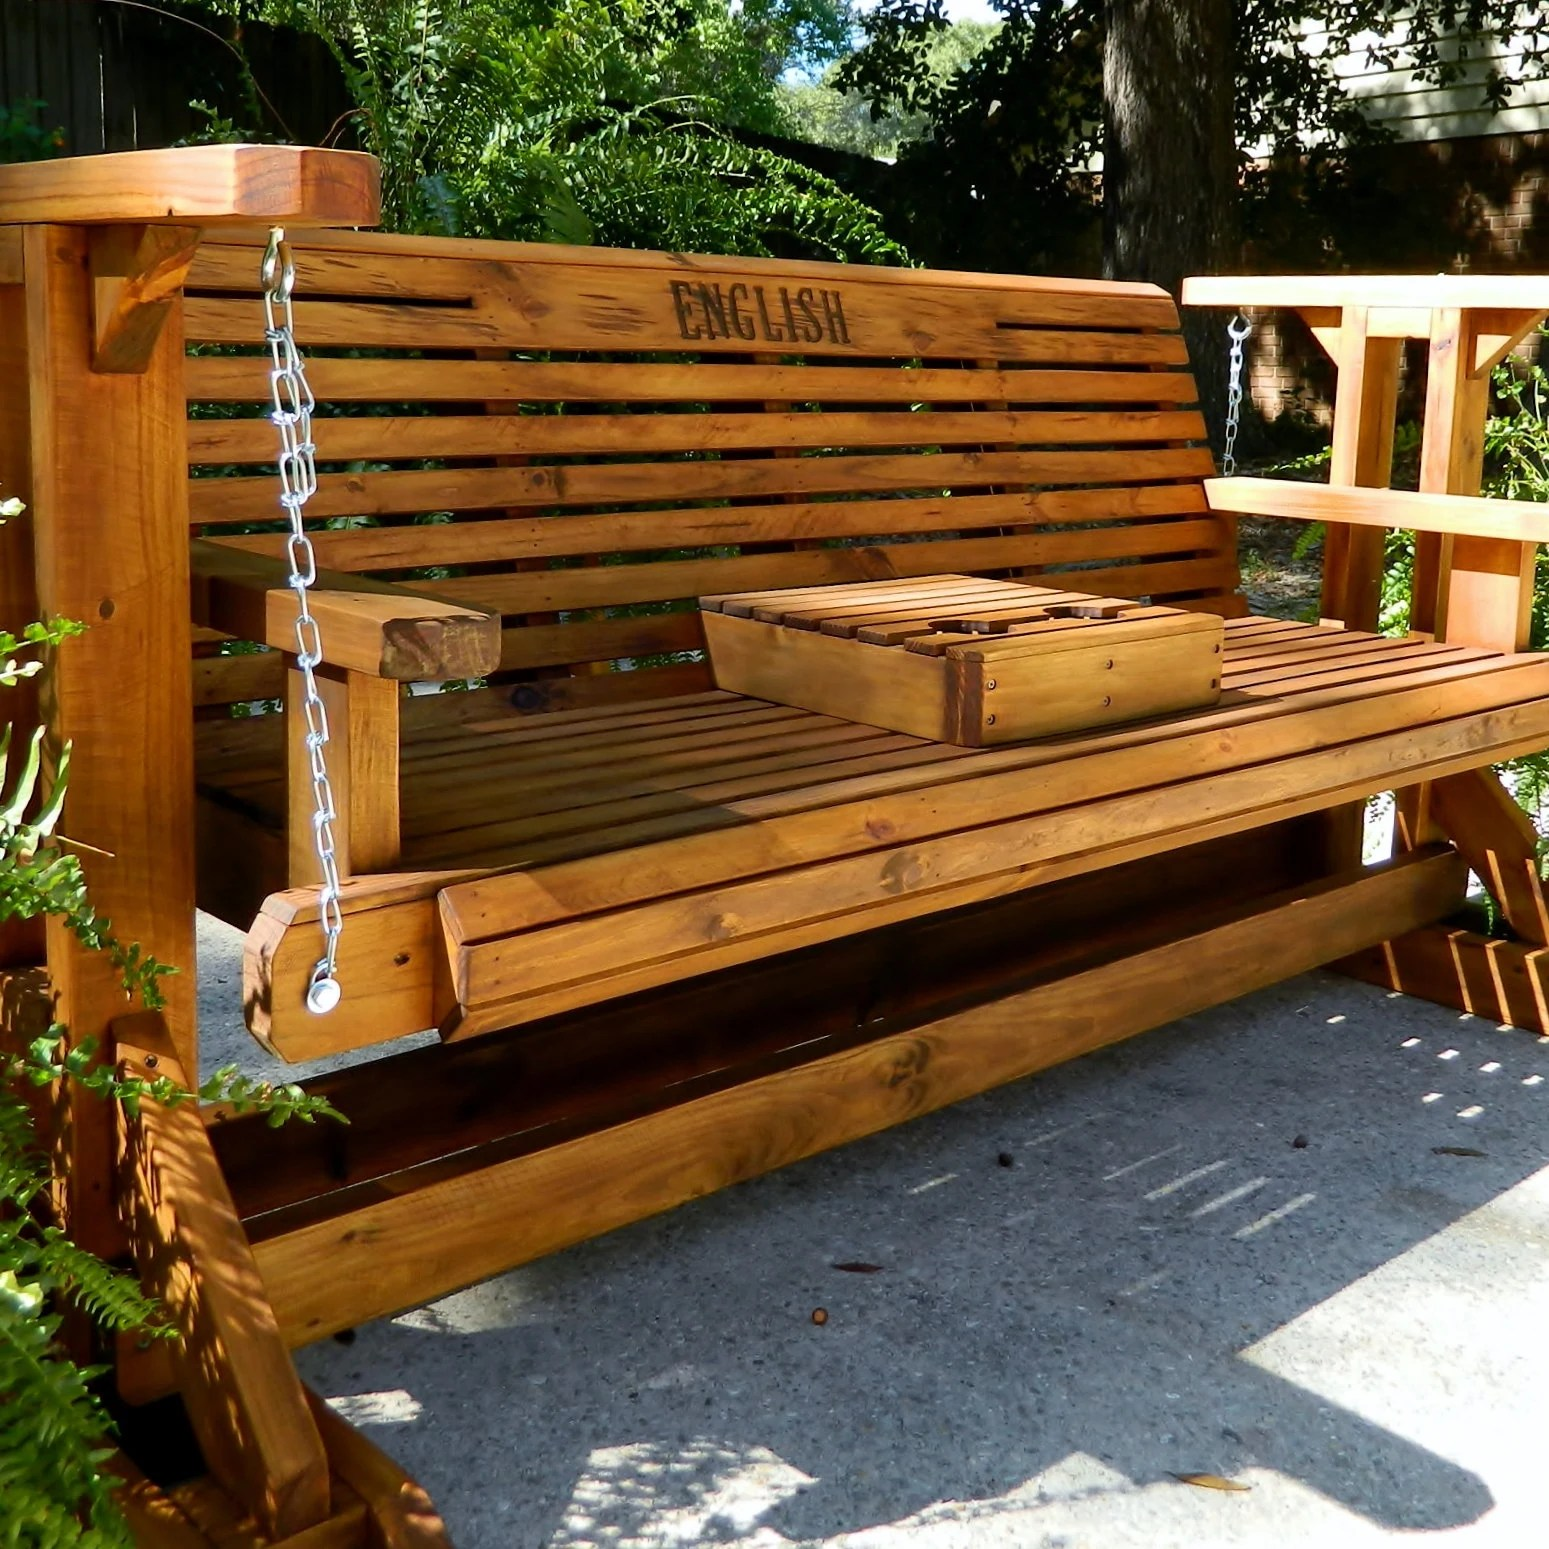 5ft glider swing with stand patio glider with cup holder patio furniture wood porch swing patio bench for garden memorial bench